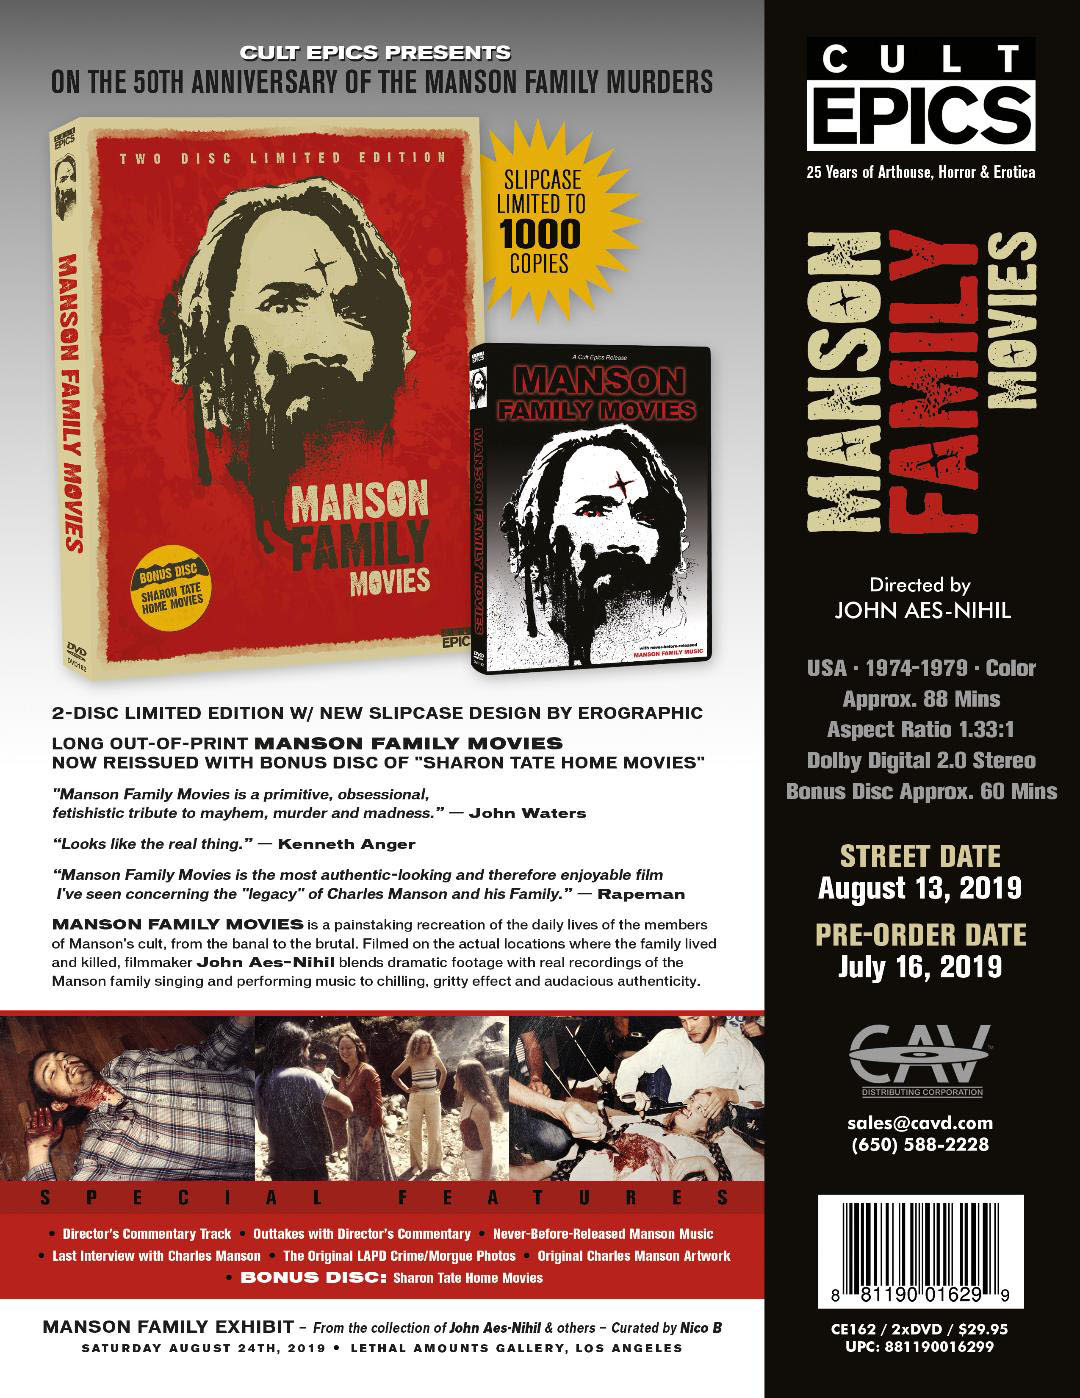 Cult Epics Releasing MANSON FAMILY MOVIES 2-DISC LIMITED EDITION